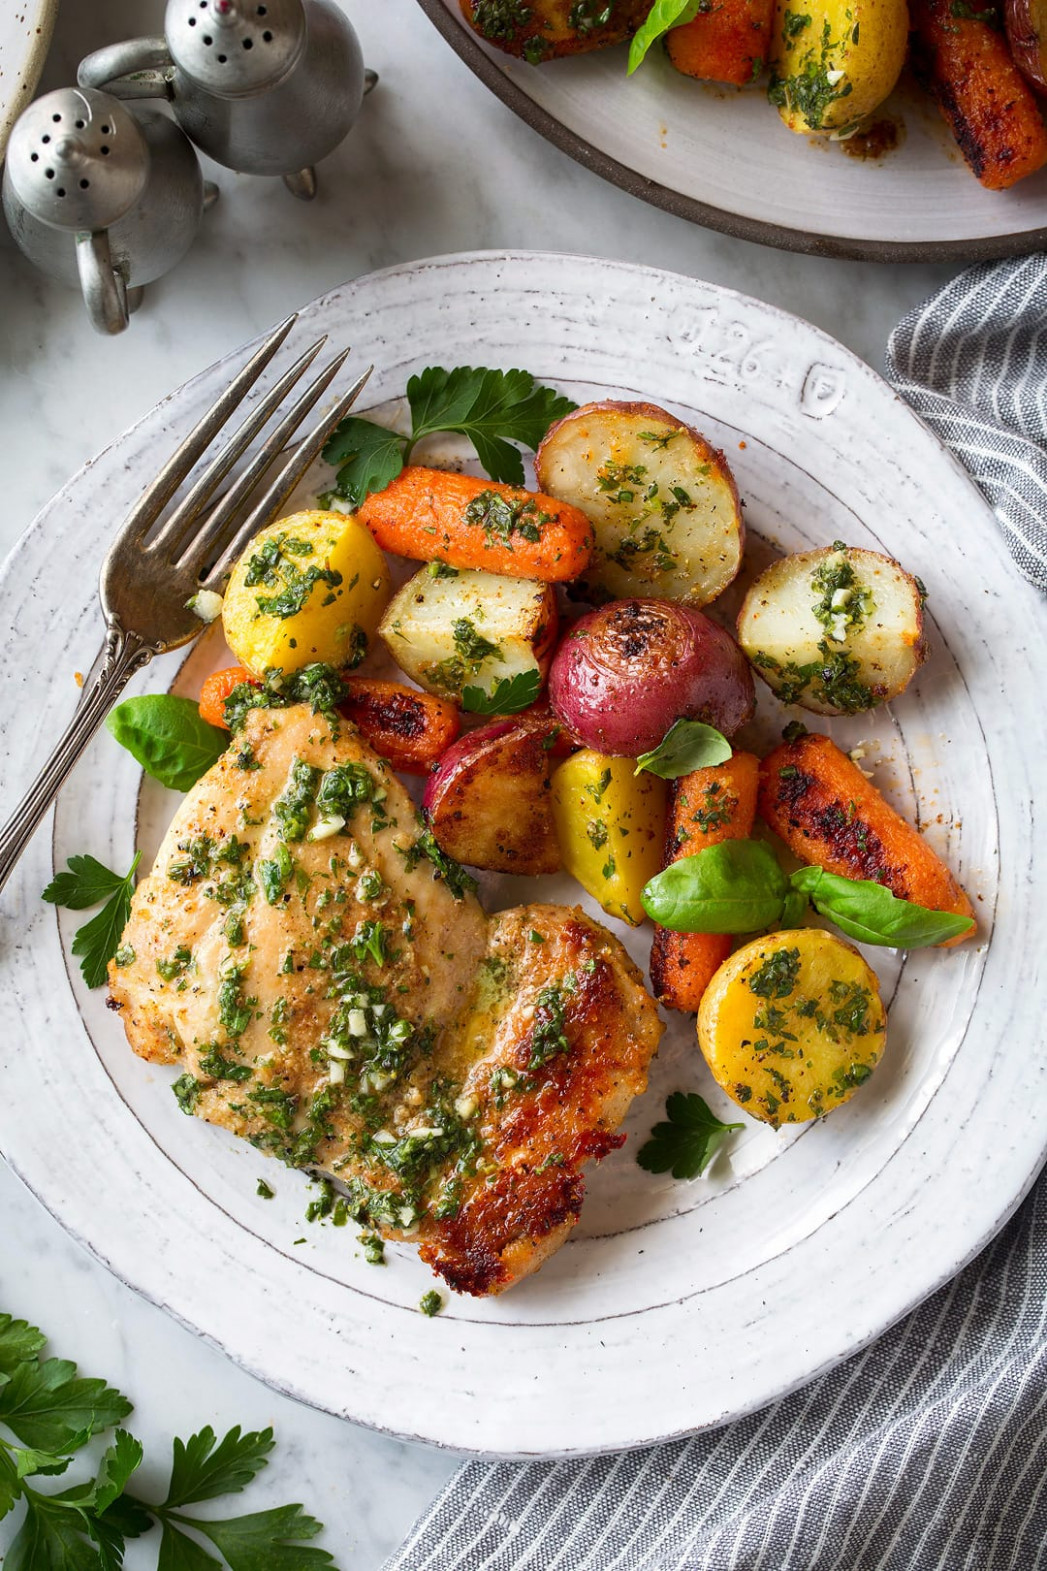 Roasted Chicken And Veggies With Garlic Herb Vinaigrette - Chicken And Veg Recipes